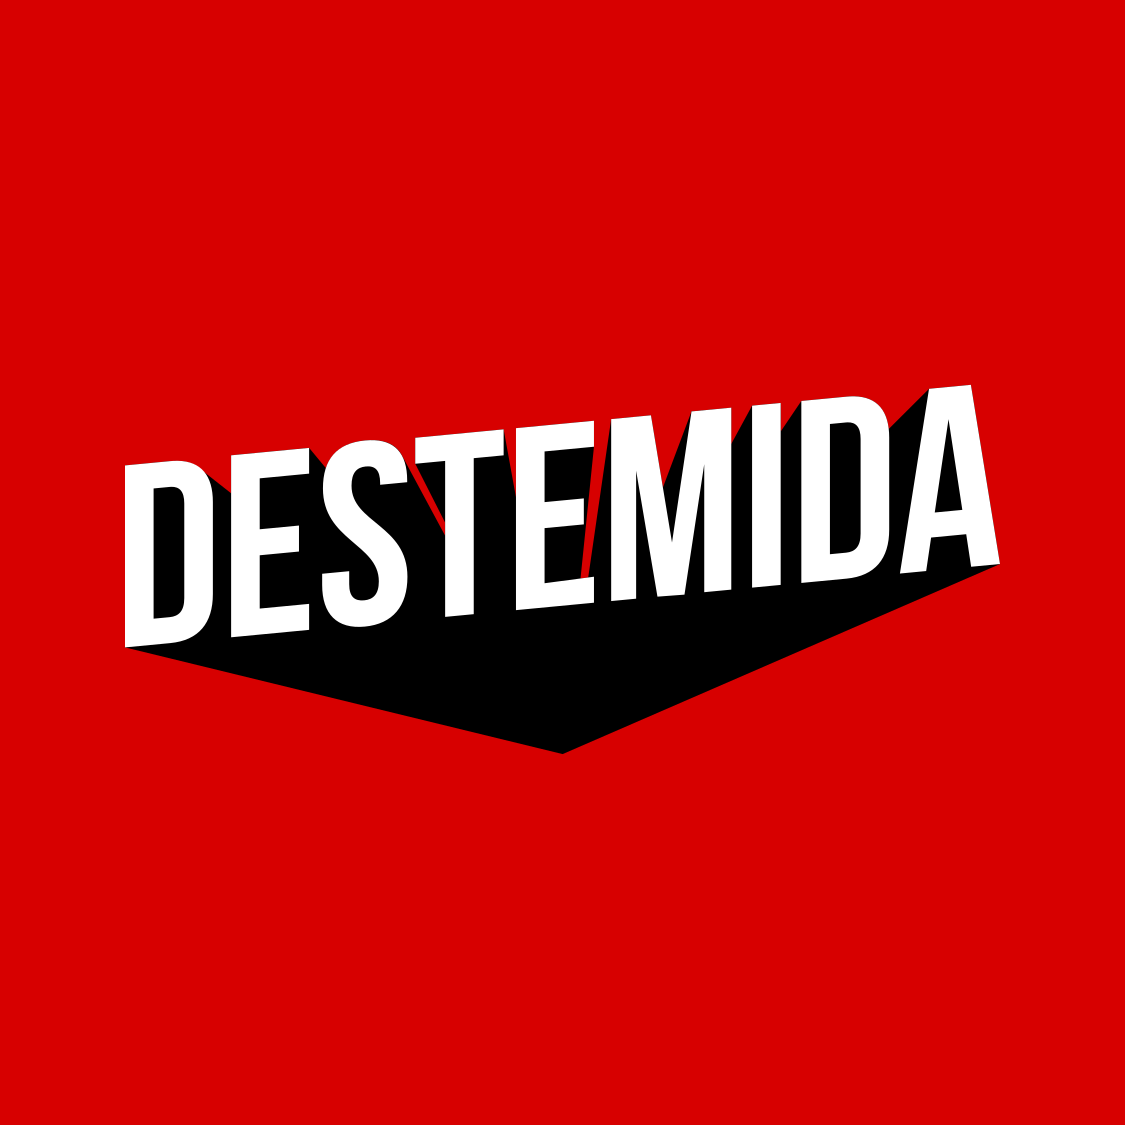 Logo-Pizzaria - DESTEMIDA